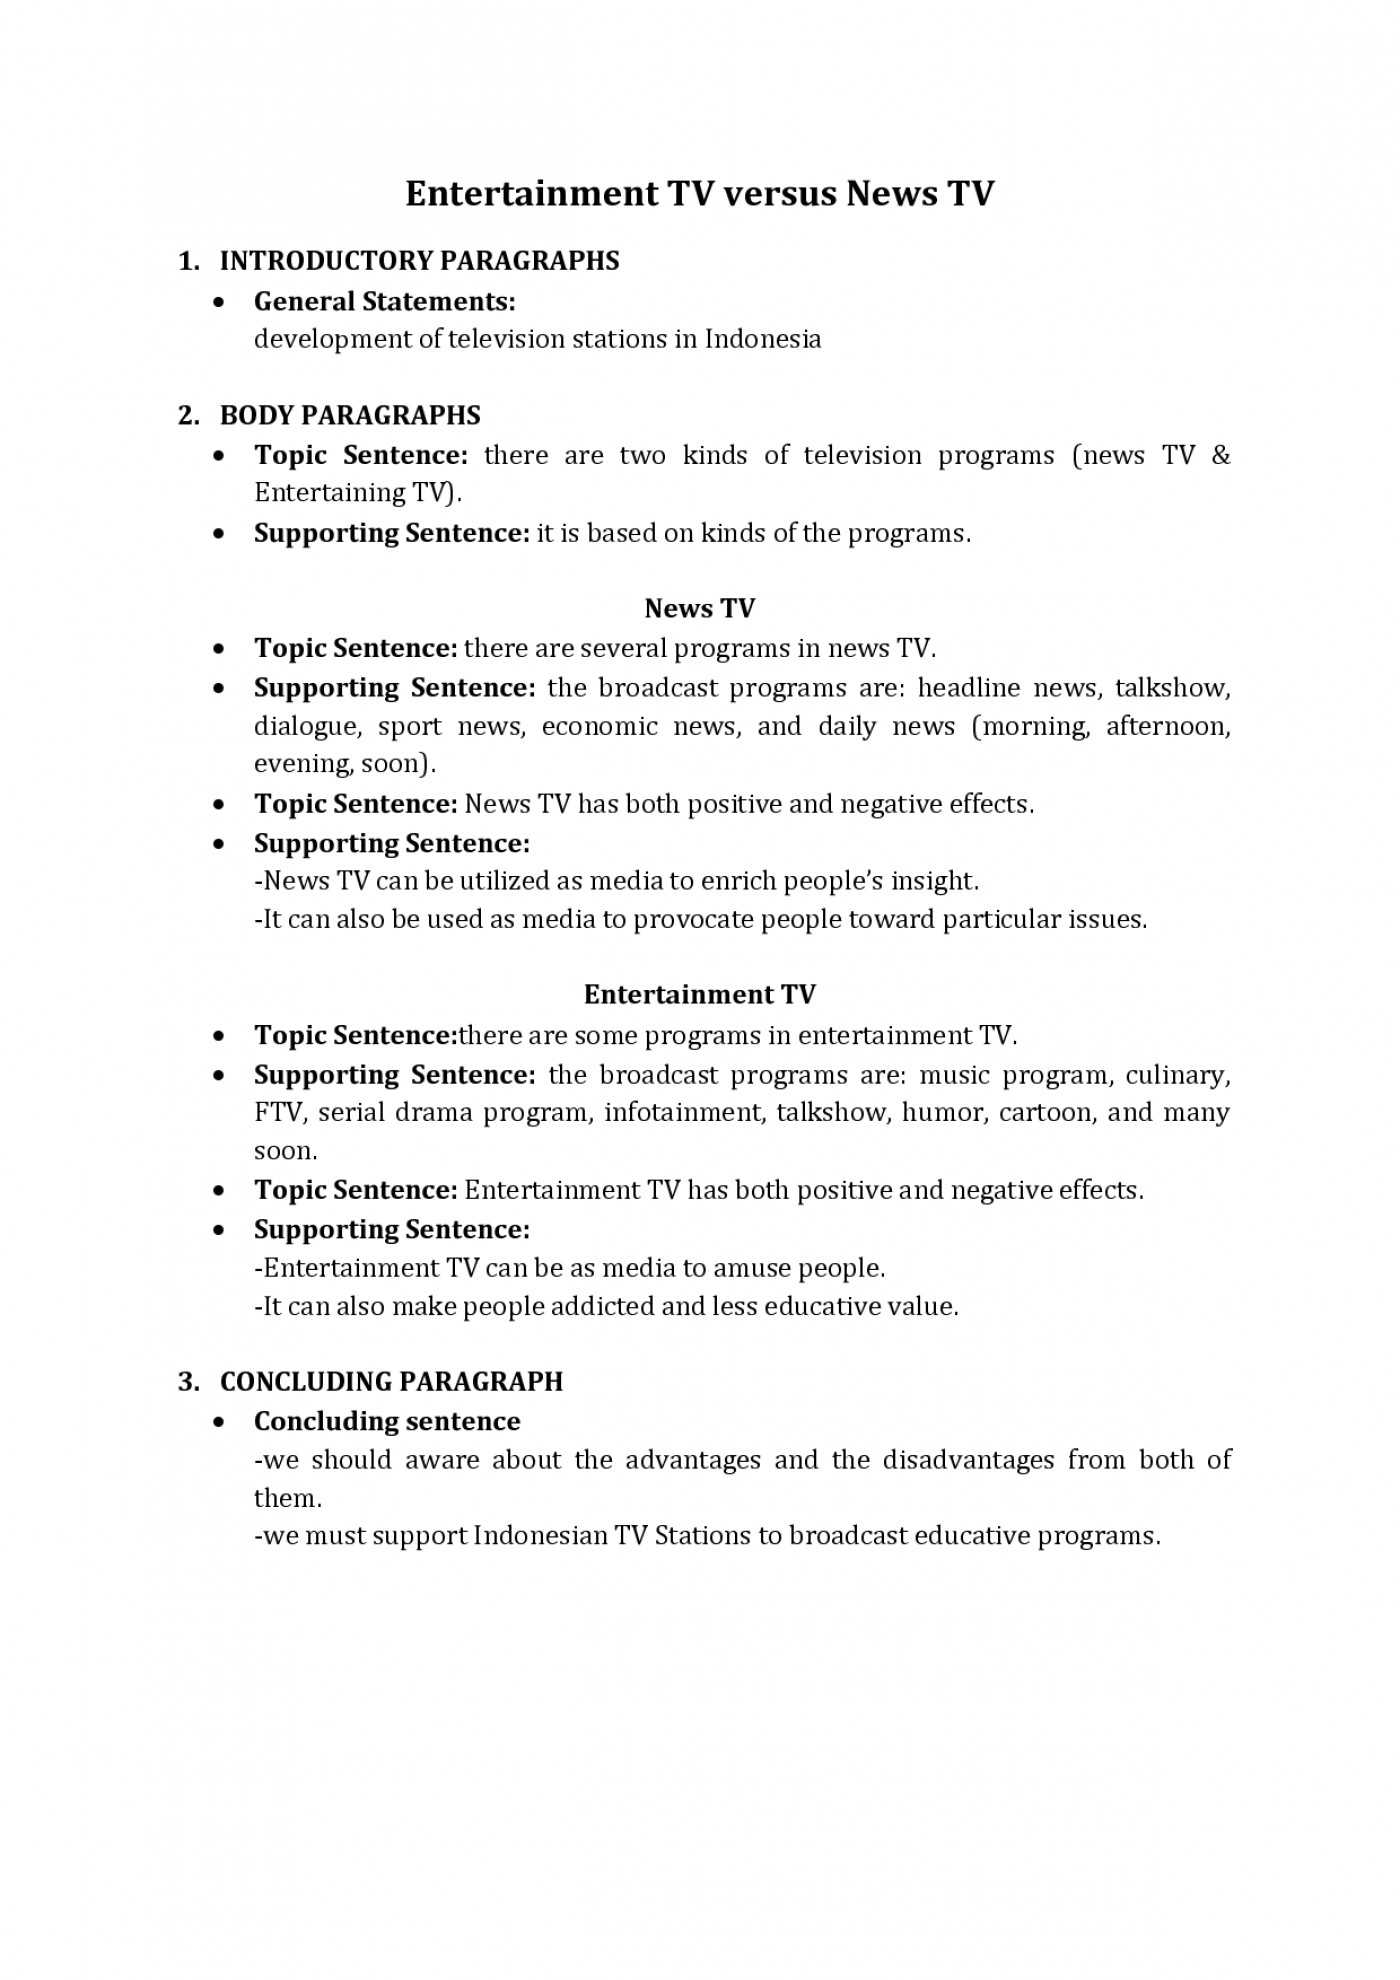 005 Fbunmxinib How To Write An Essay Outline Excellent For University 6th Grade 1400